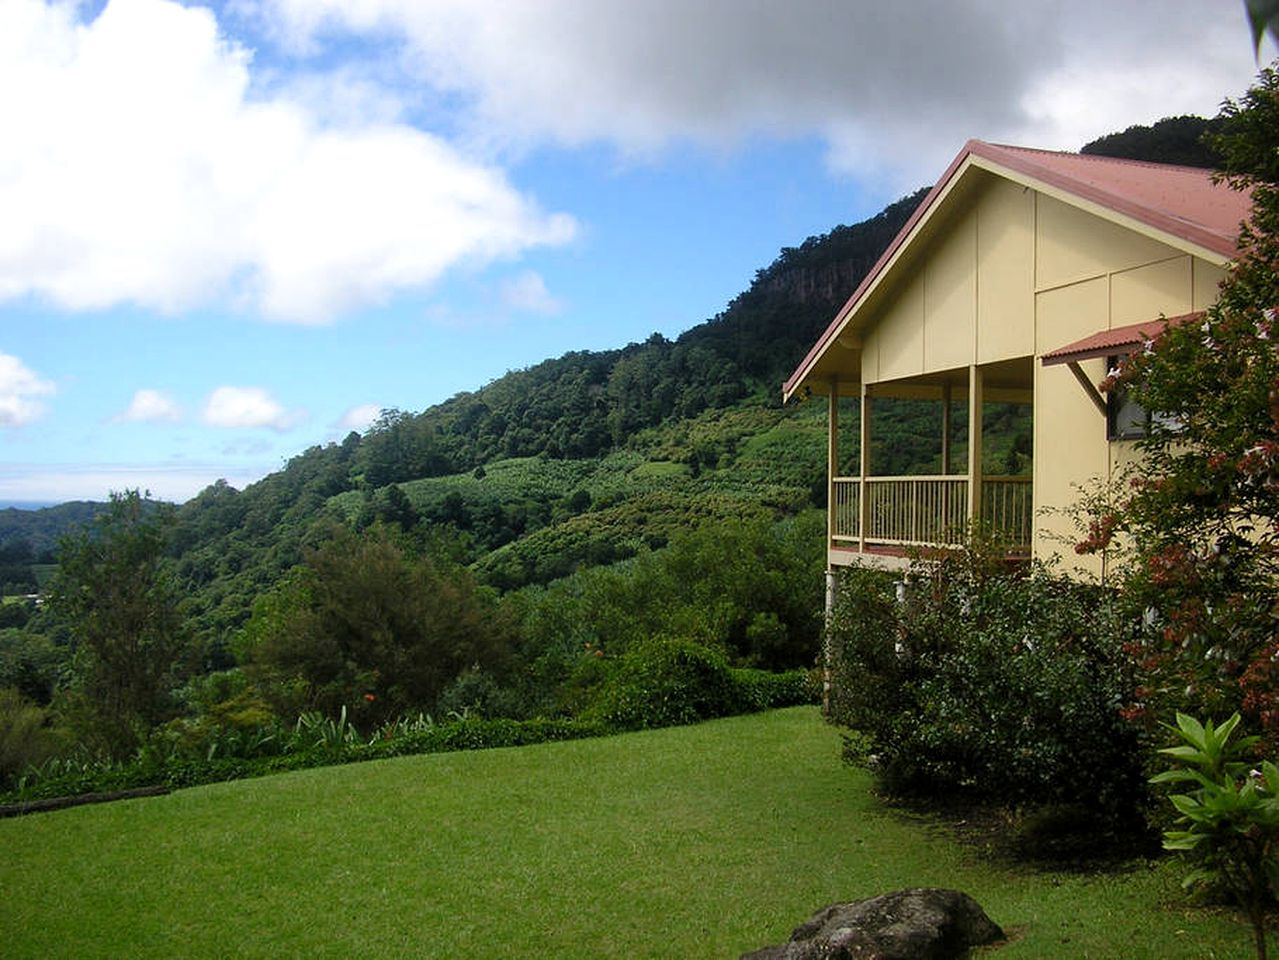 Cottages (Mullumbimby, New South Wales, Australia)